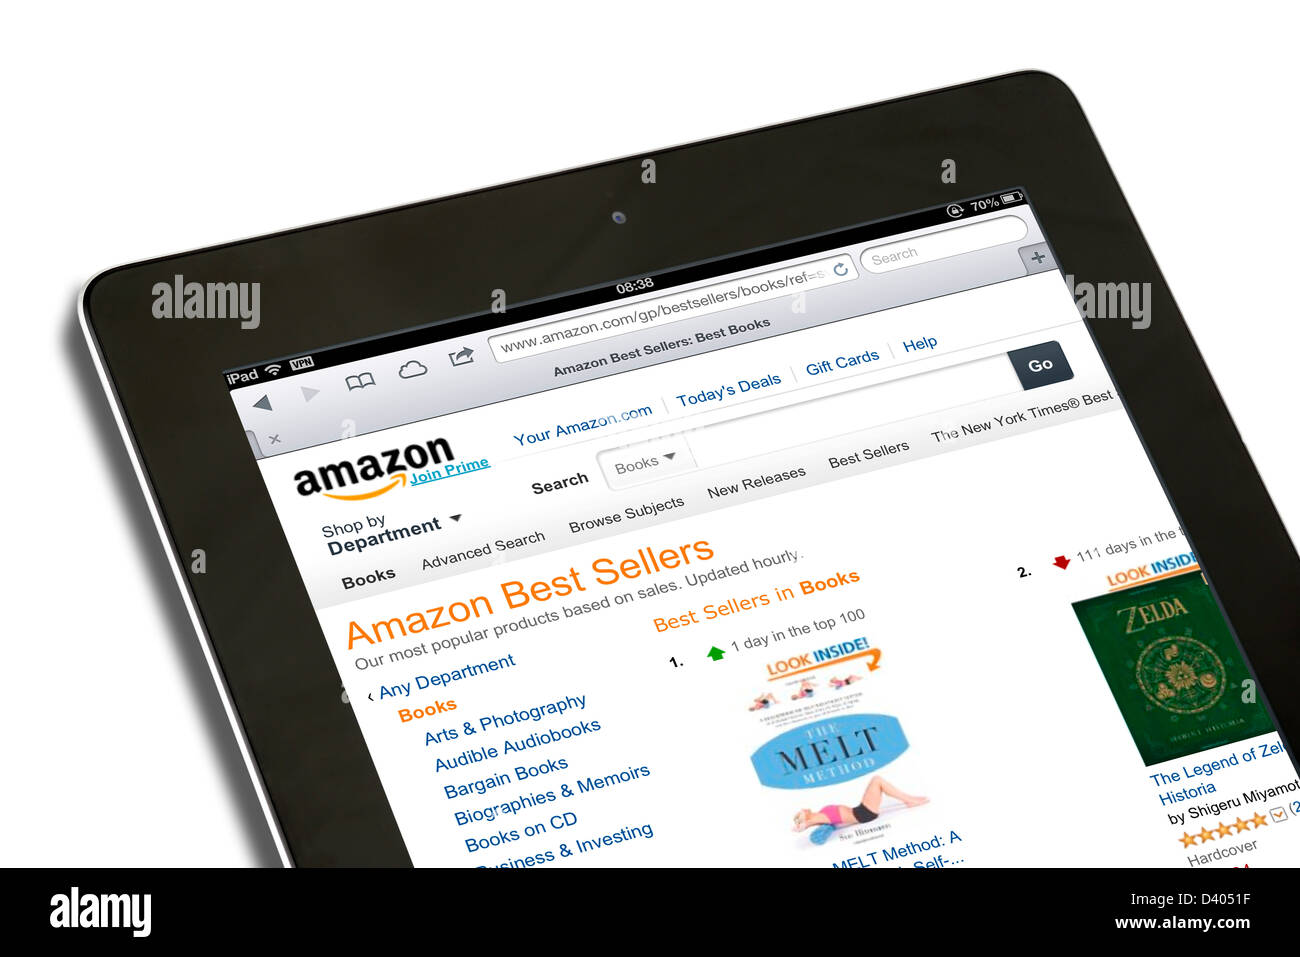 Shopping for books on the amazon.com USA website on a 4th generation Apple iPad tablet computer - Stock Image